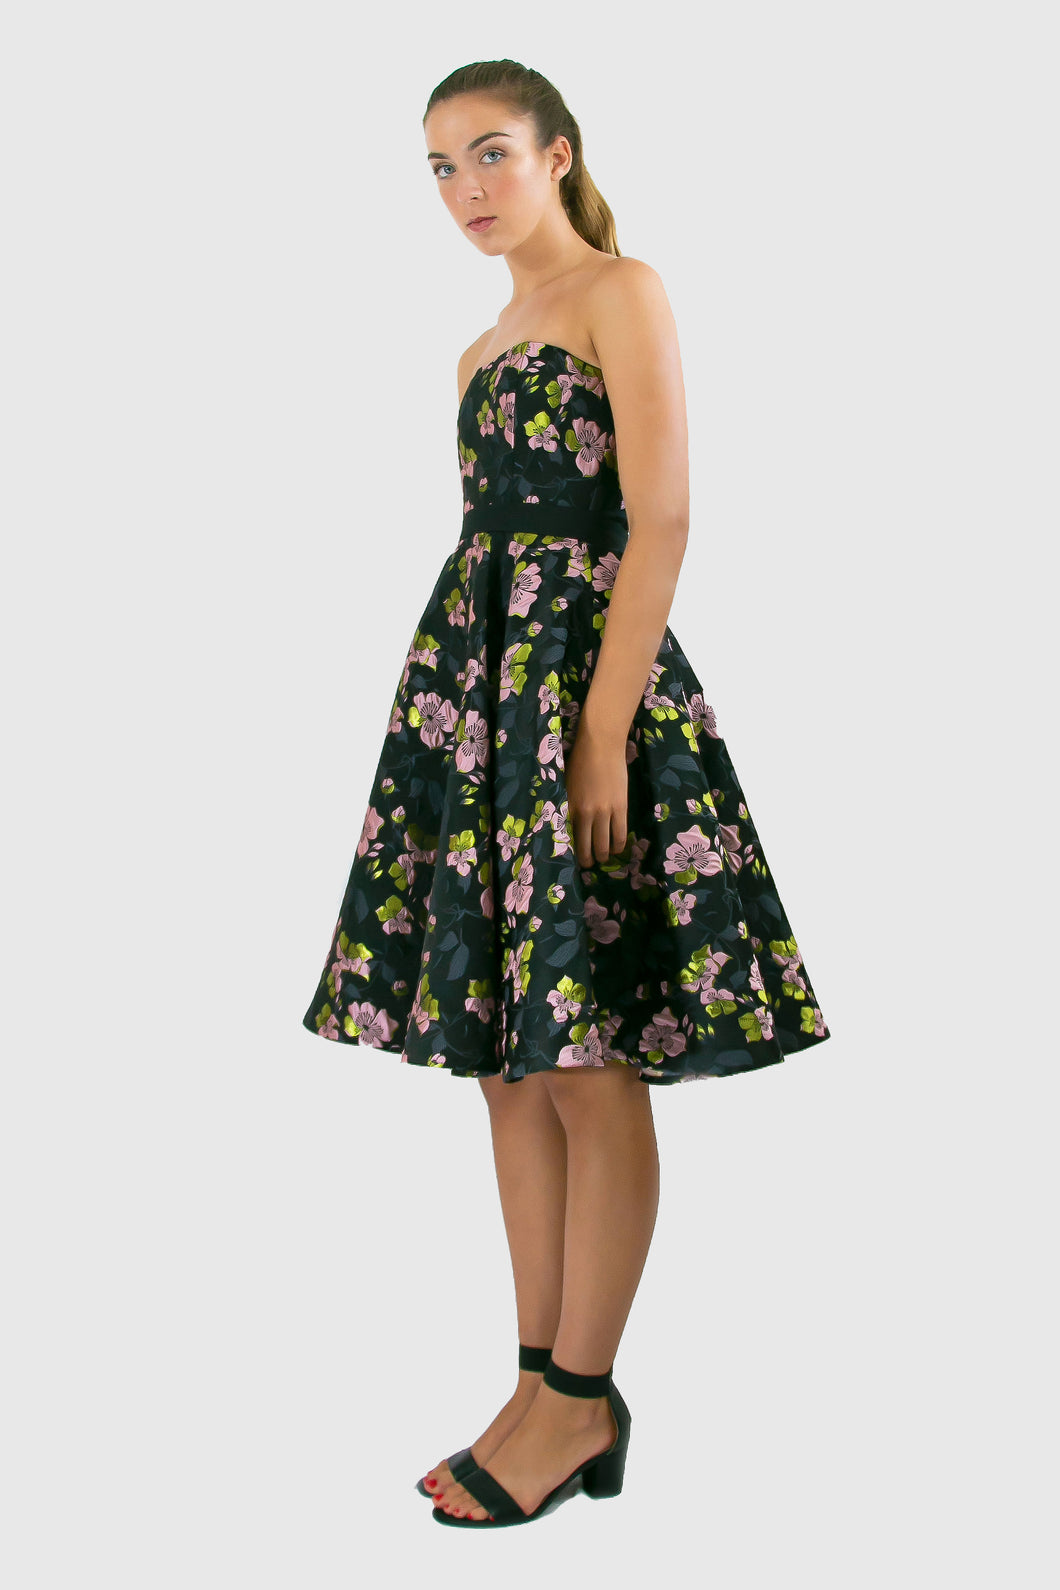 Elisabetta Bellu Marina black, lime and pink floral brocade cocktail dress